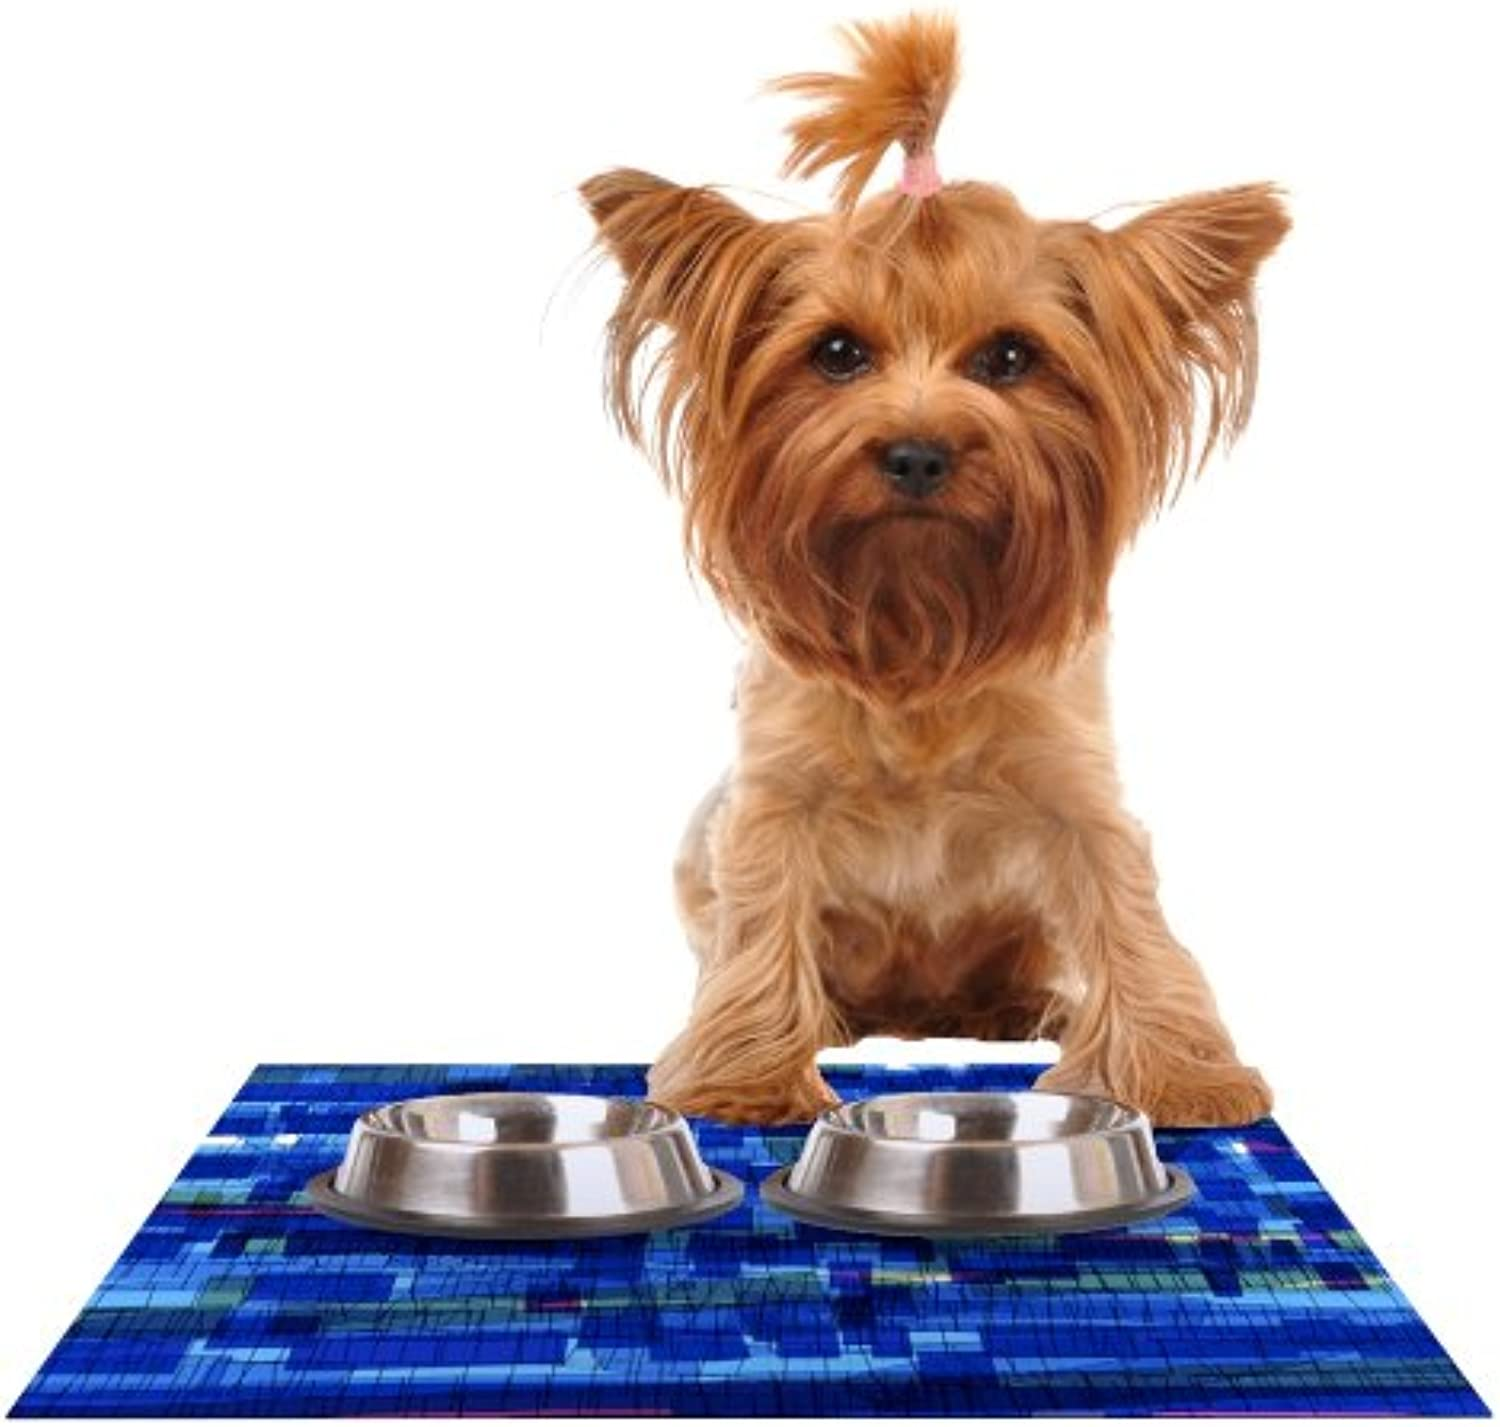 Kess InHouse Frederic LevyHadida Squares Traffic bluee Feeding Mat for Pet Bowl, 18 by 13Inch